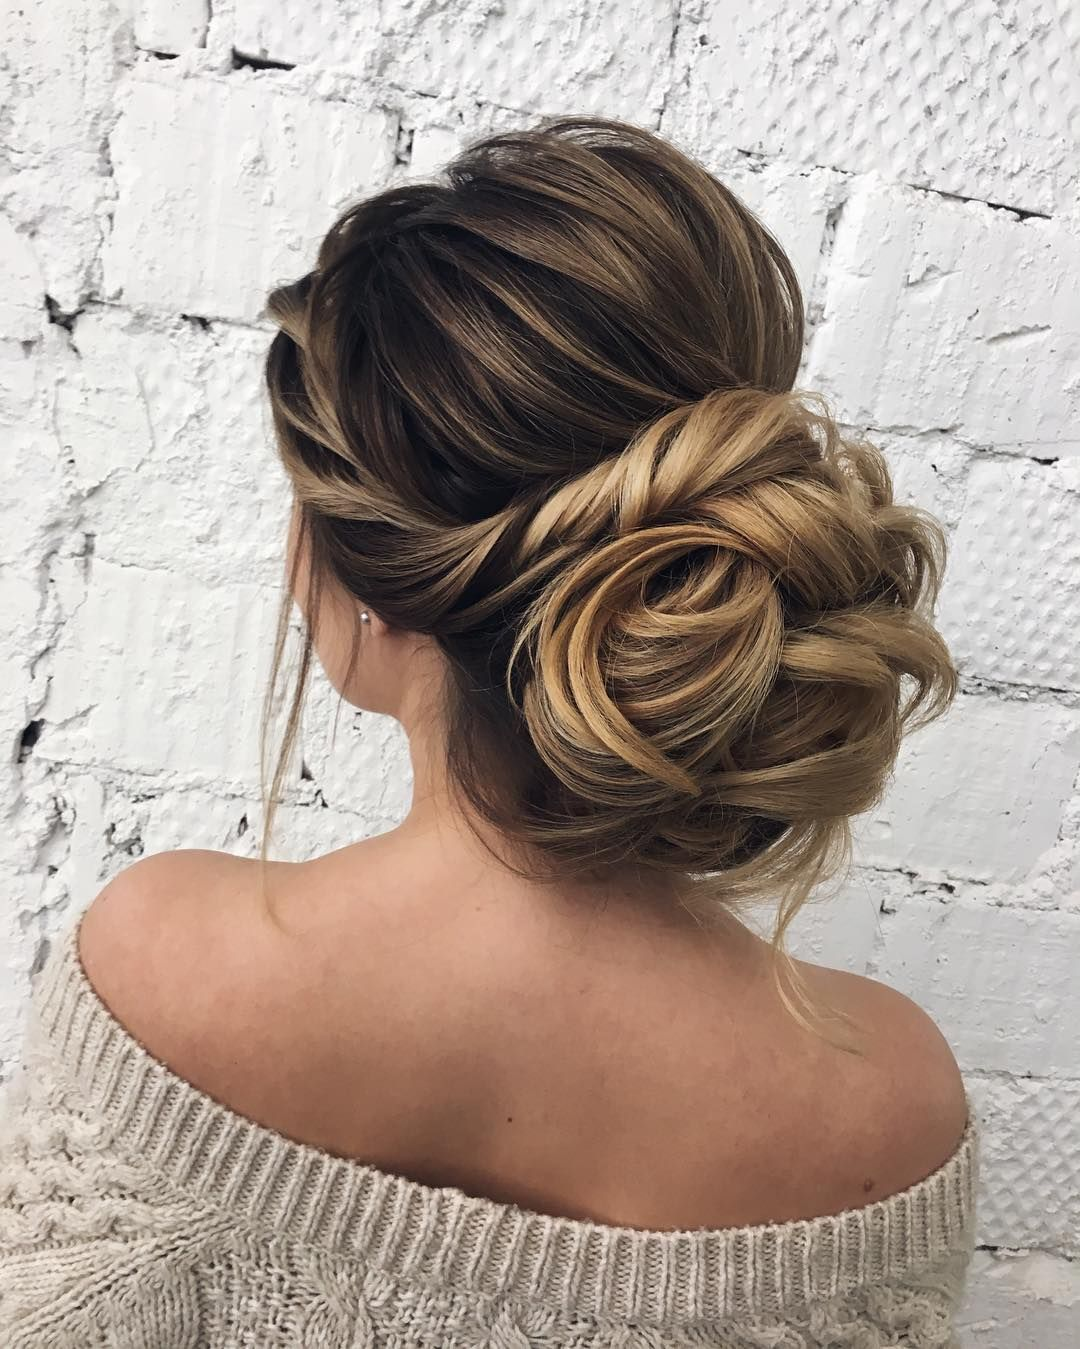 Fabulous Wedding Hairstyles For Every Wedding Dress Neckline